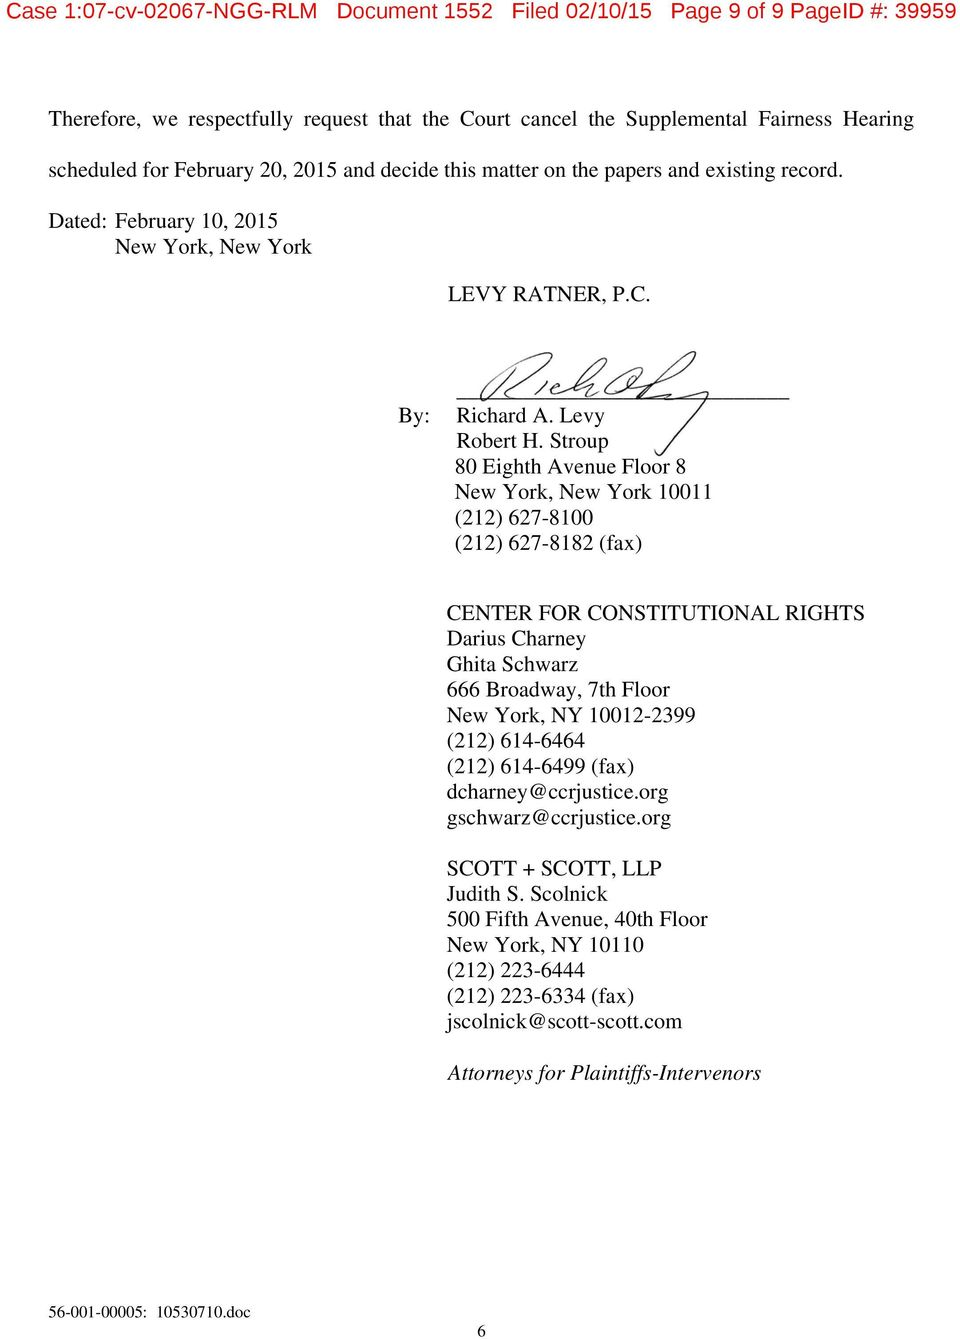 Case 1 07 cv ngg rlm document 1552 filed 02 10 15 page 1 for 111 8th ave 7th floor new york ny 10011